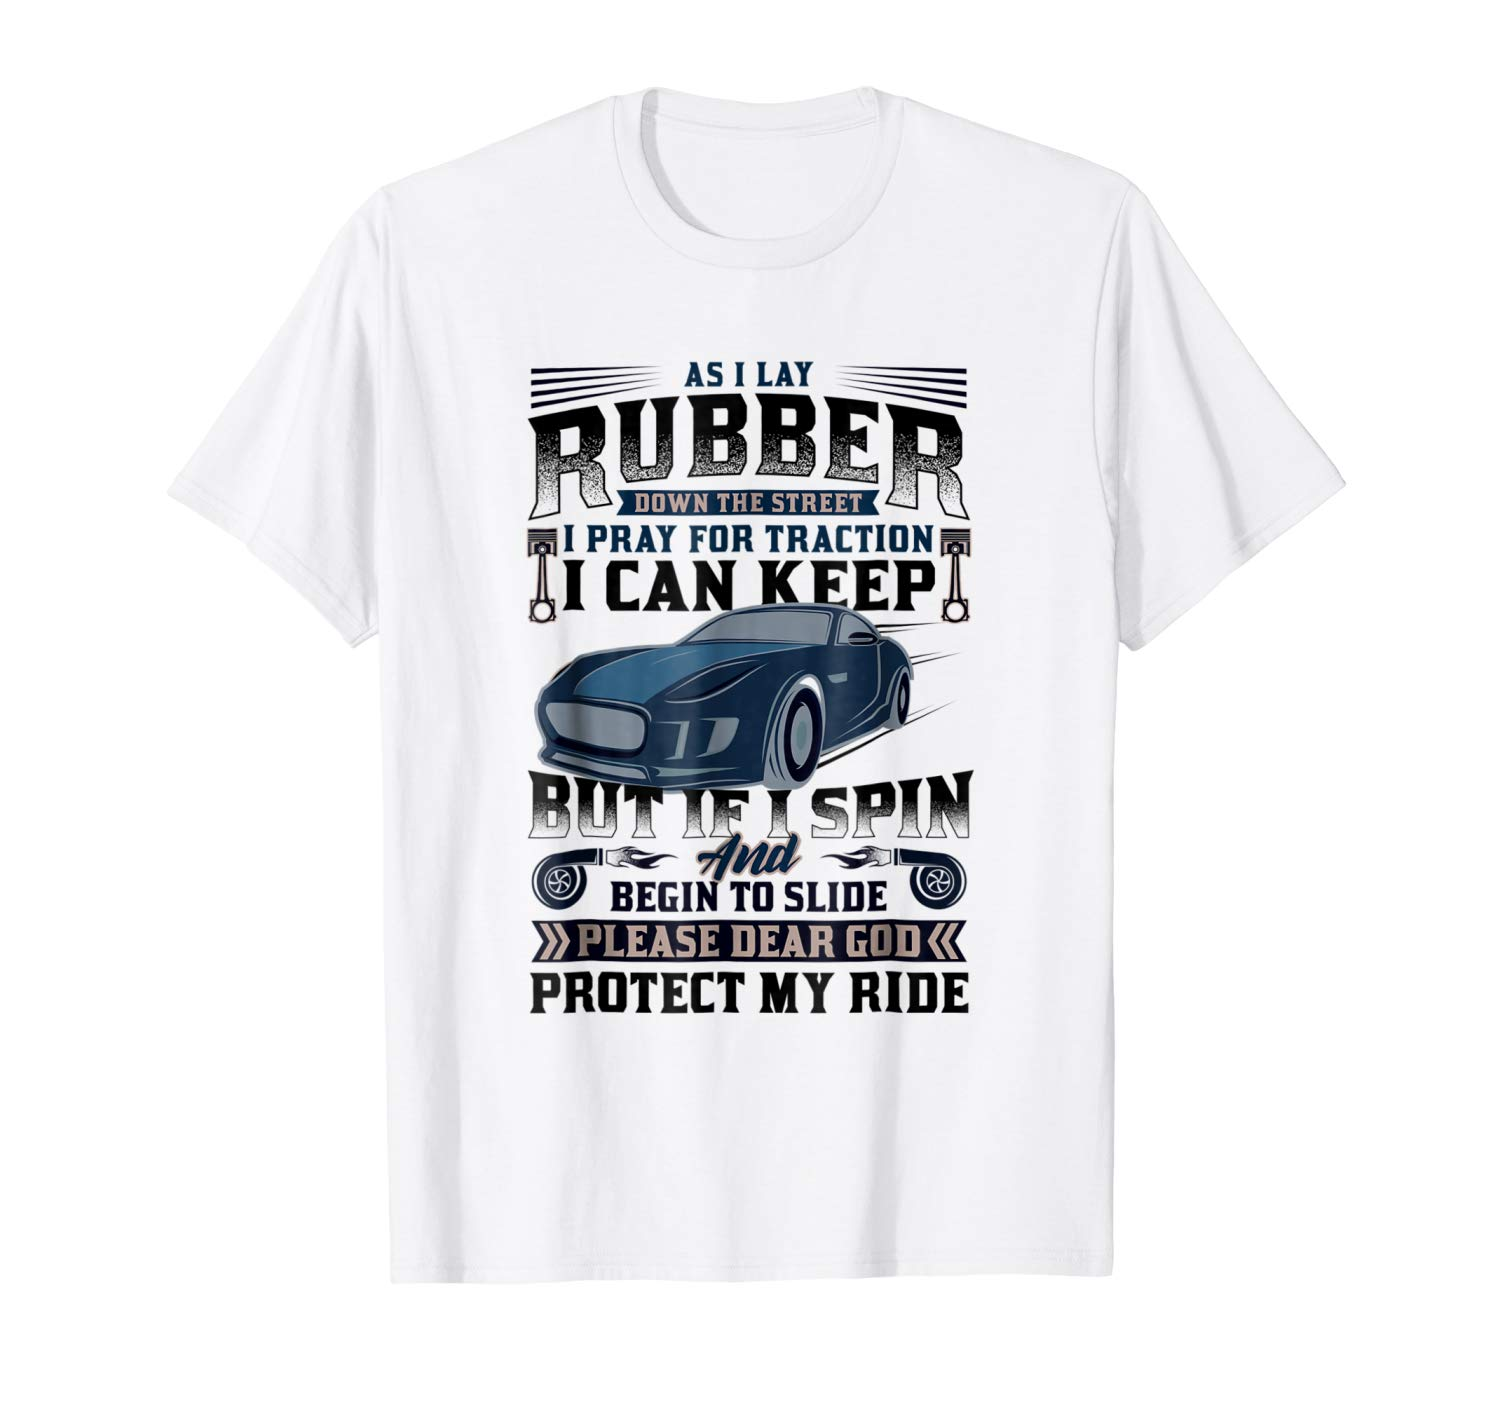 As I Lay Rubber Down The Street Shirt I Pray For Traction